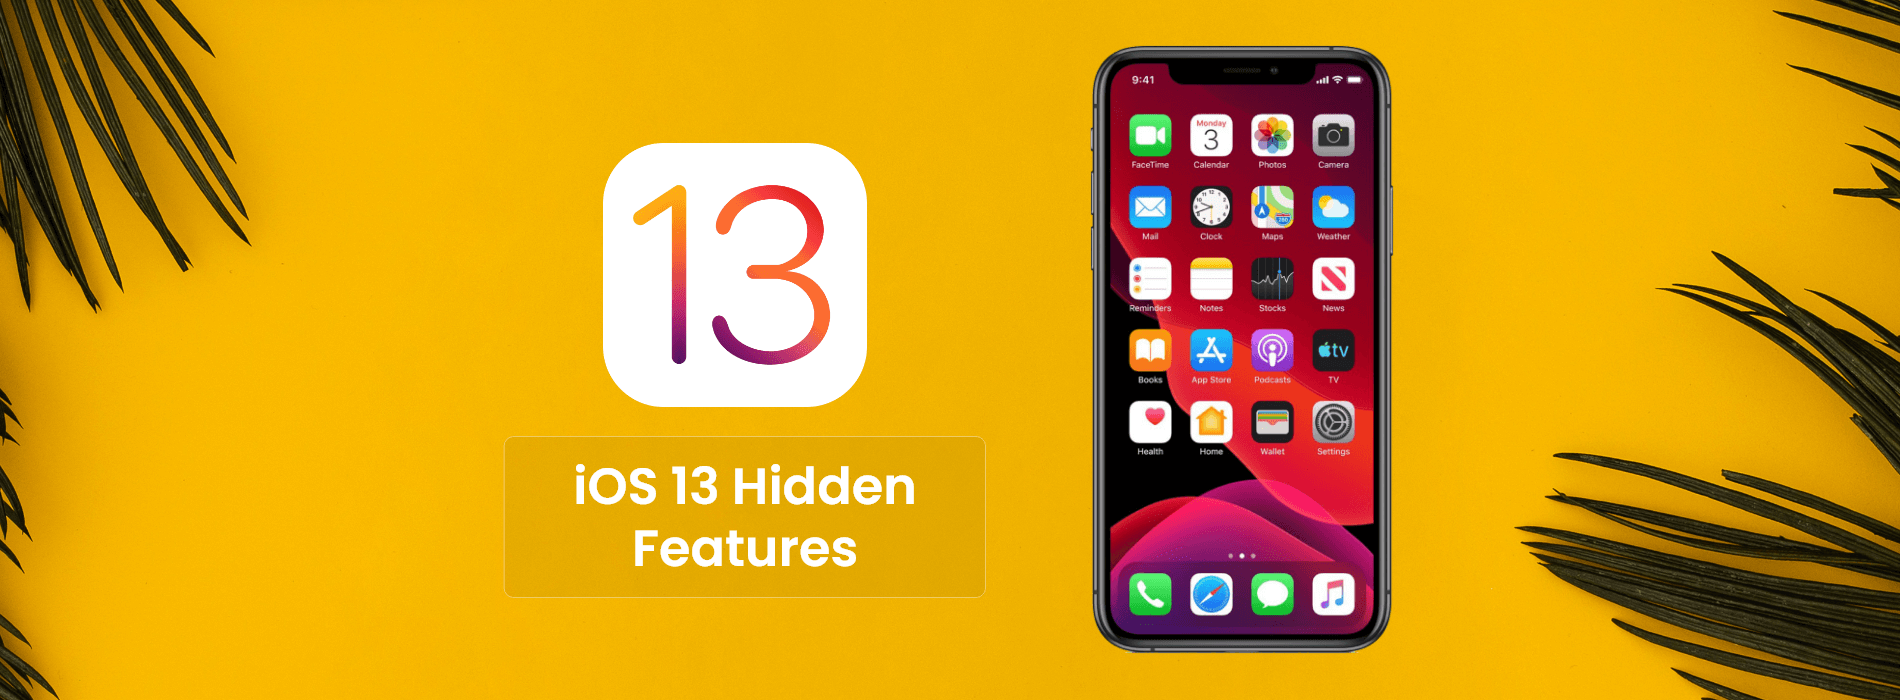 5 Promising Features of iOS 13 Developers Need To Know About